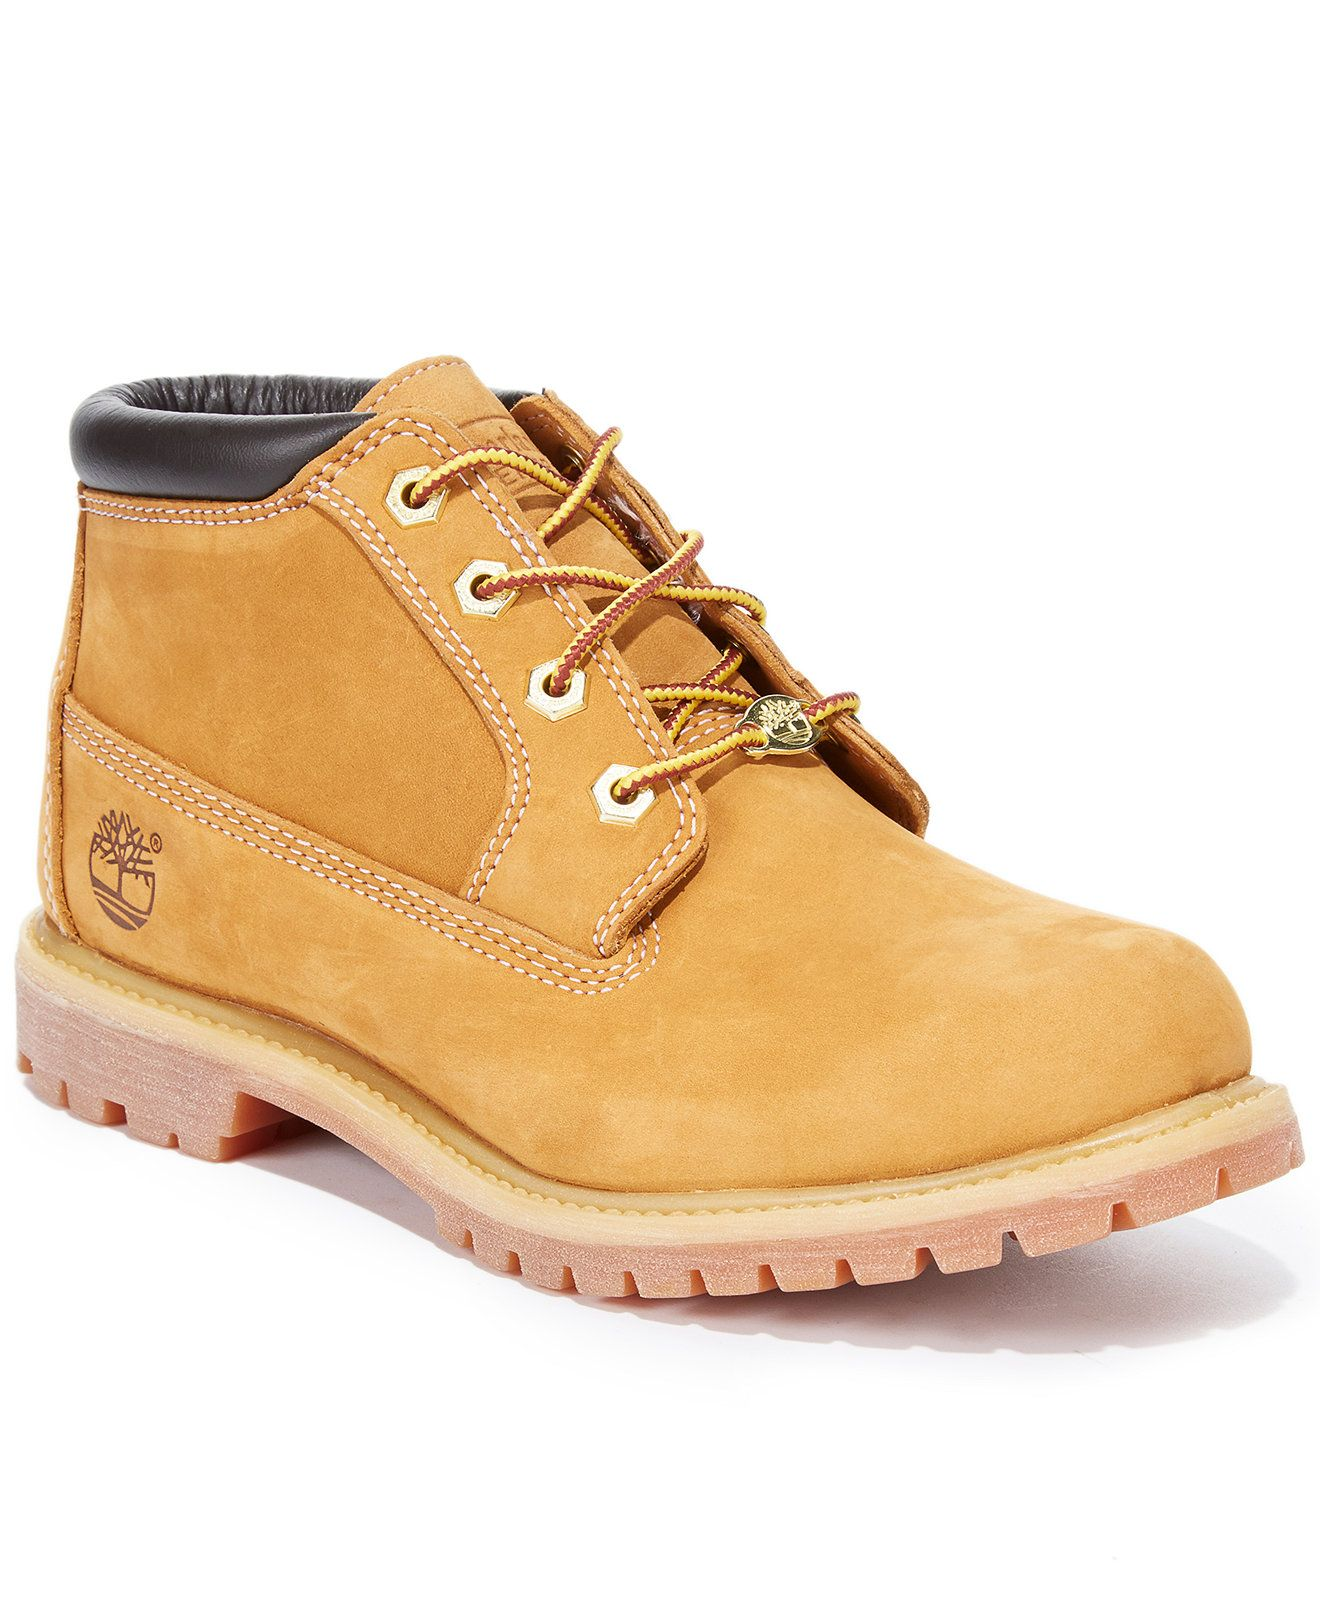 Timberland Women s Nellie Ankle Booties - Boots - Shoes - Macy s 05857eedd9